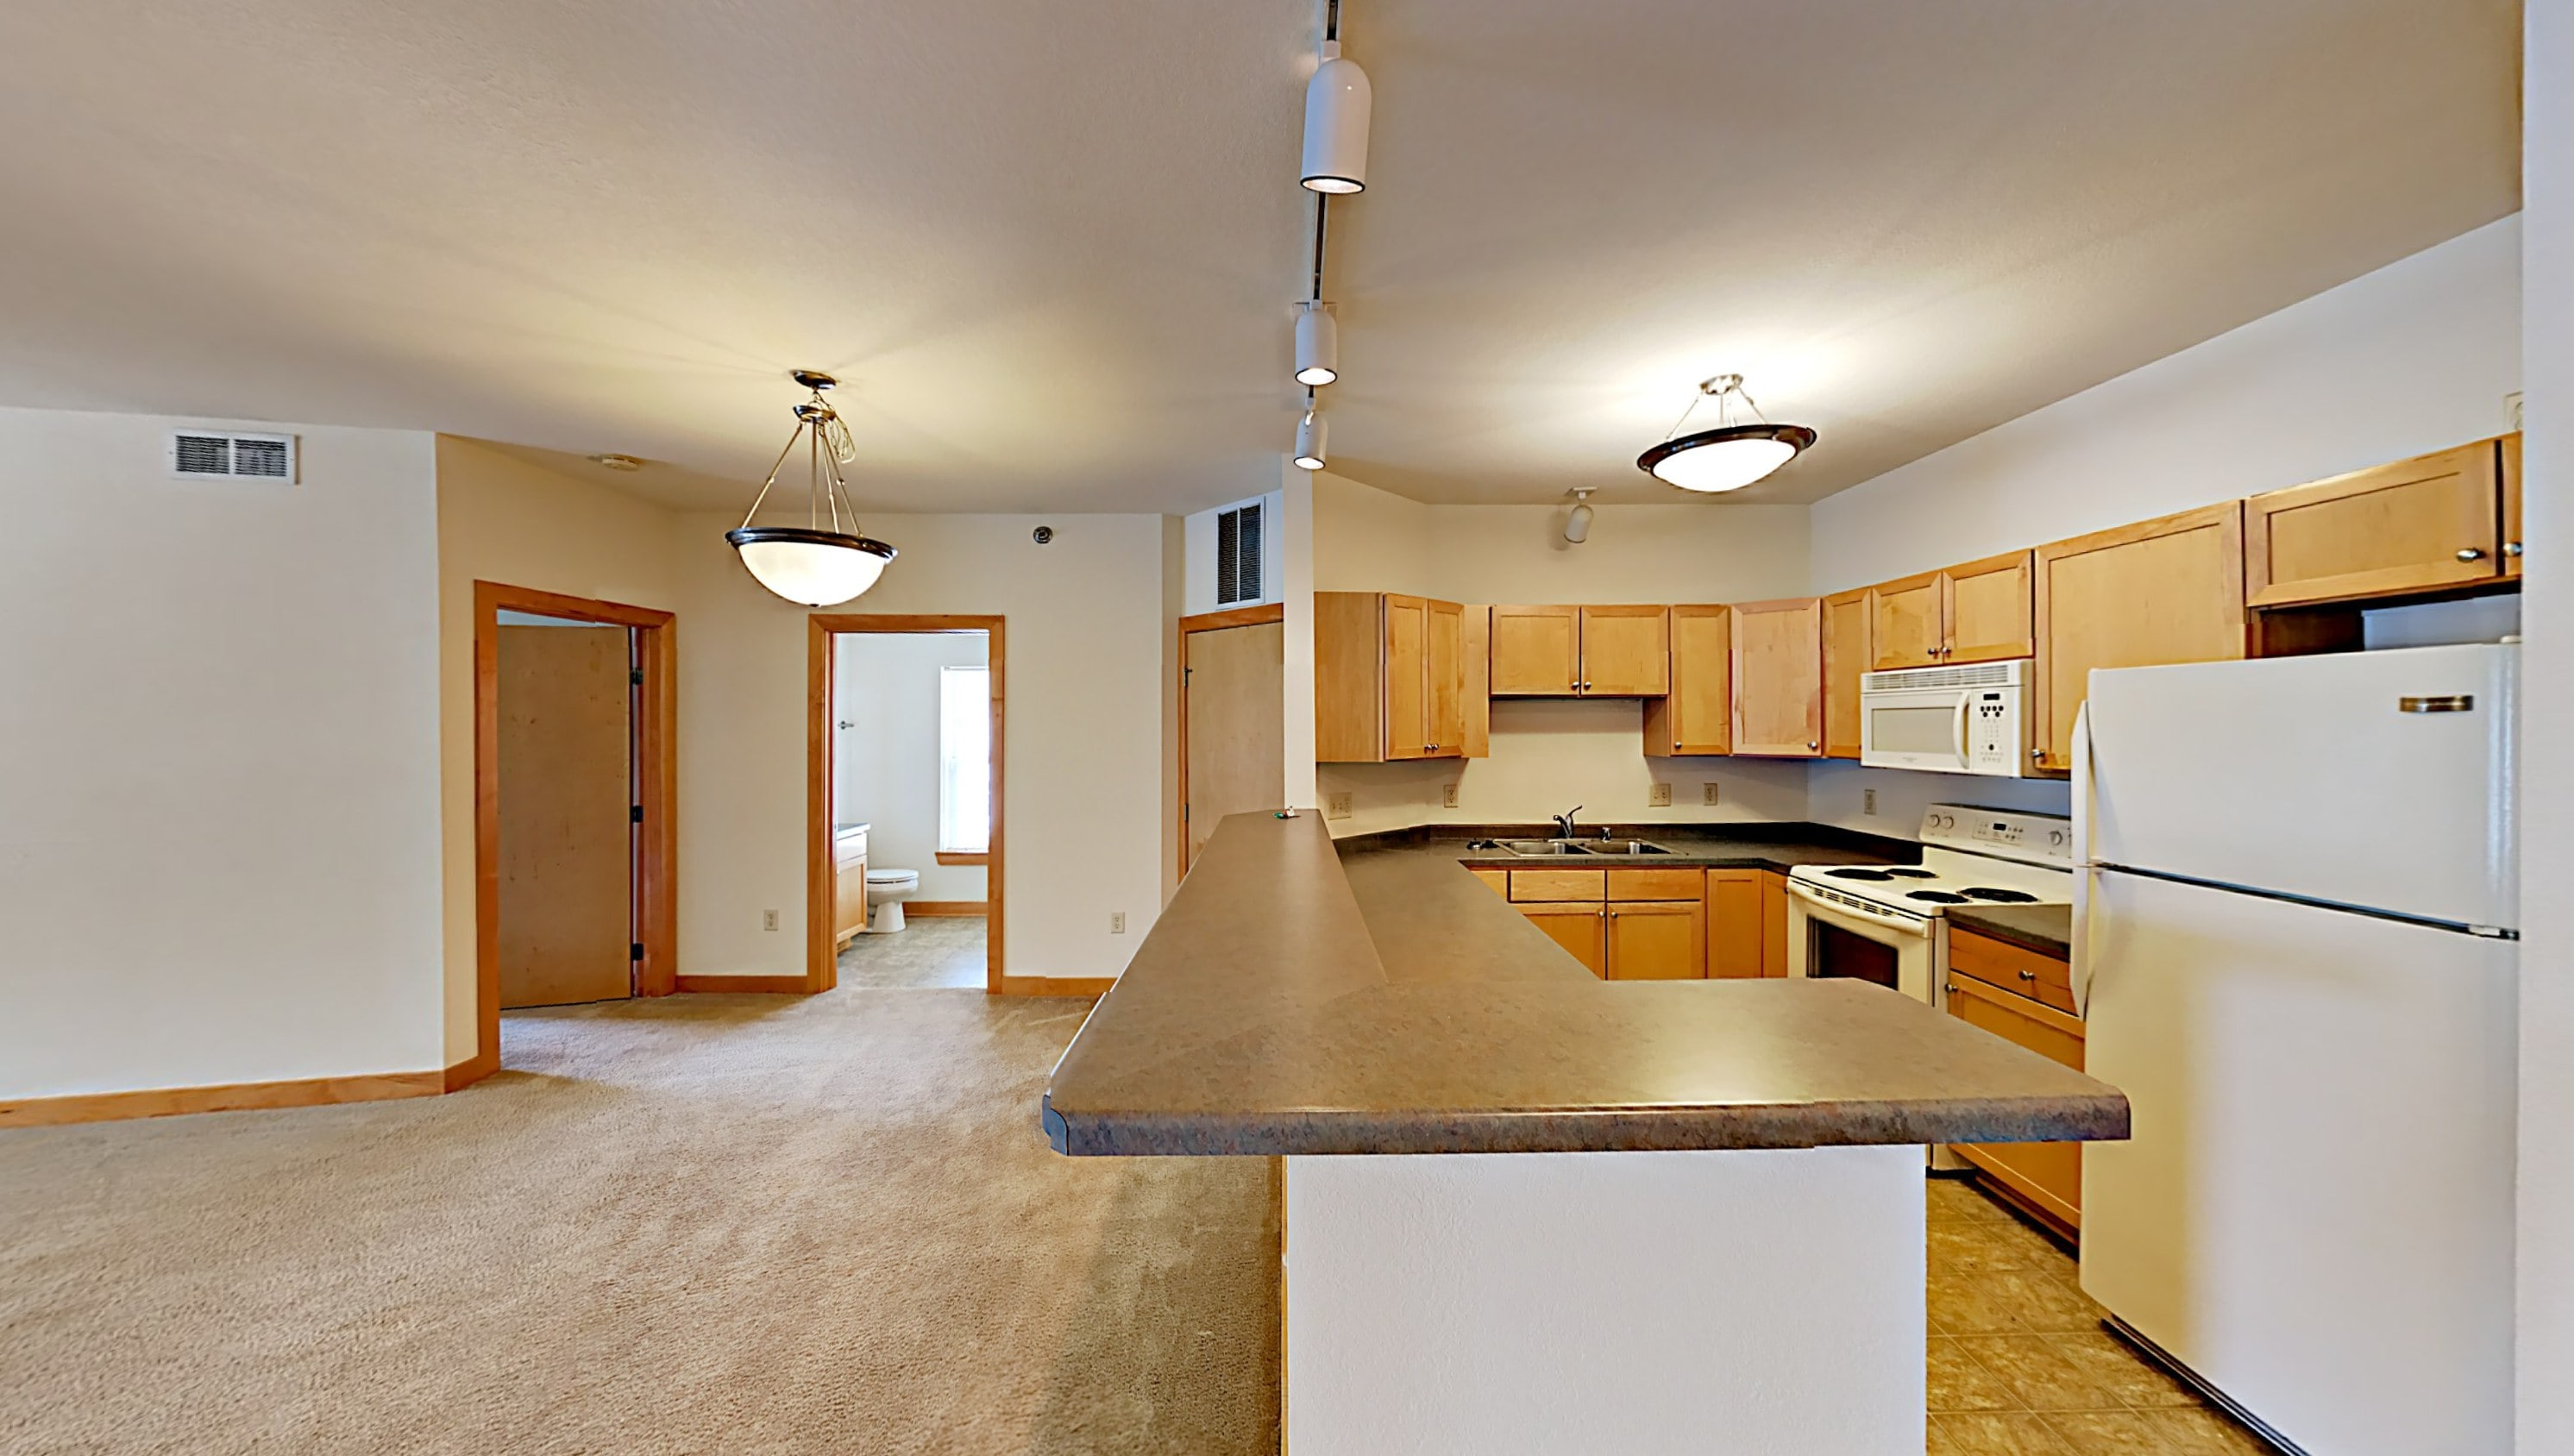 20 Best Apartments In Waukesha, WI (with pictures)!